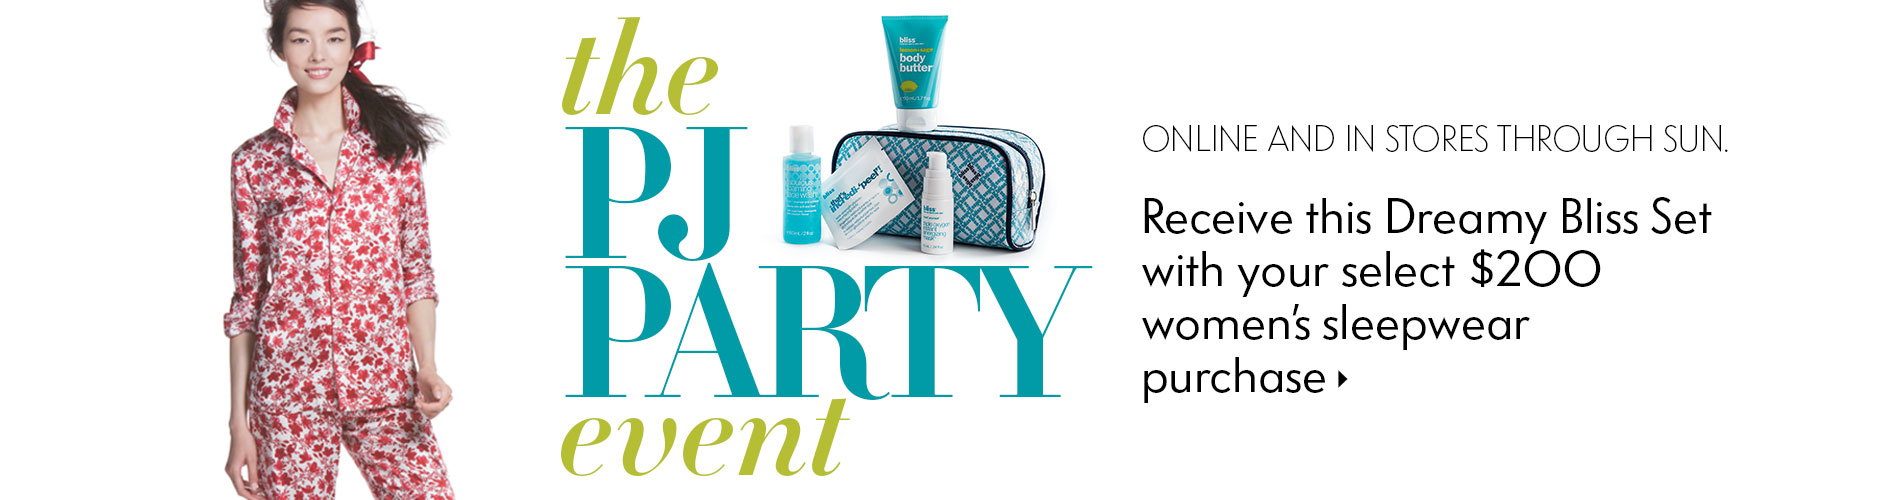 PJ Party Event GWP